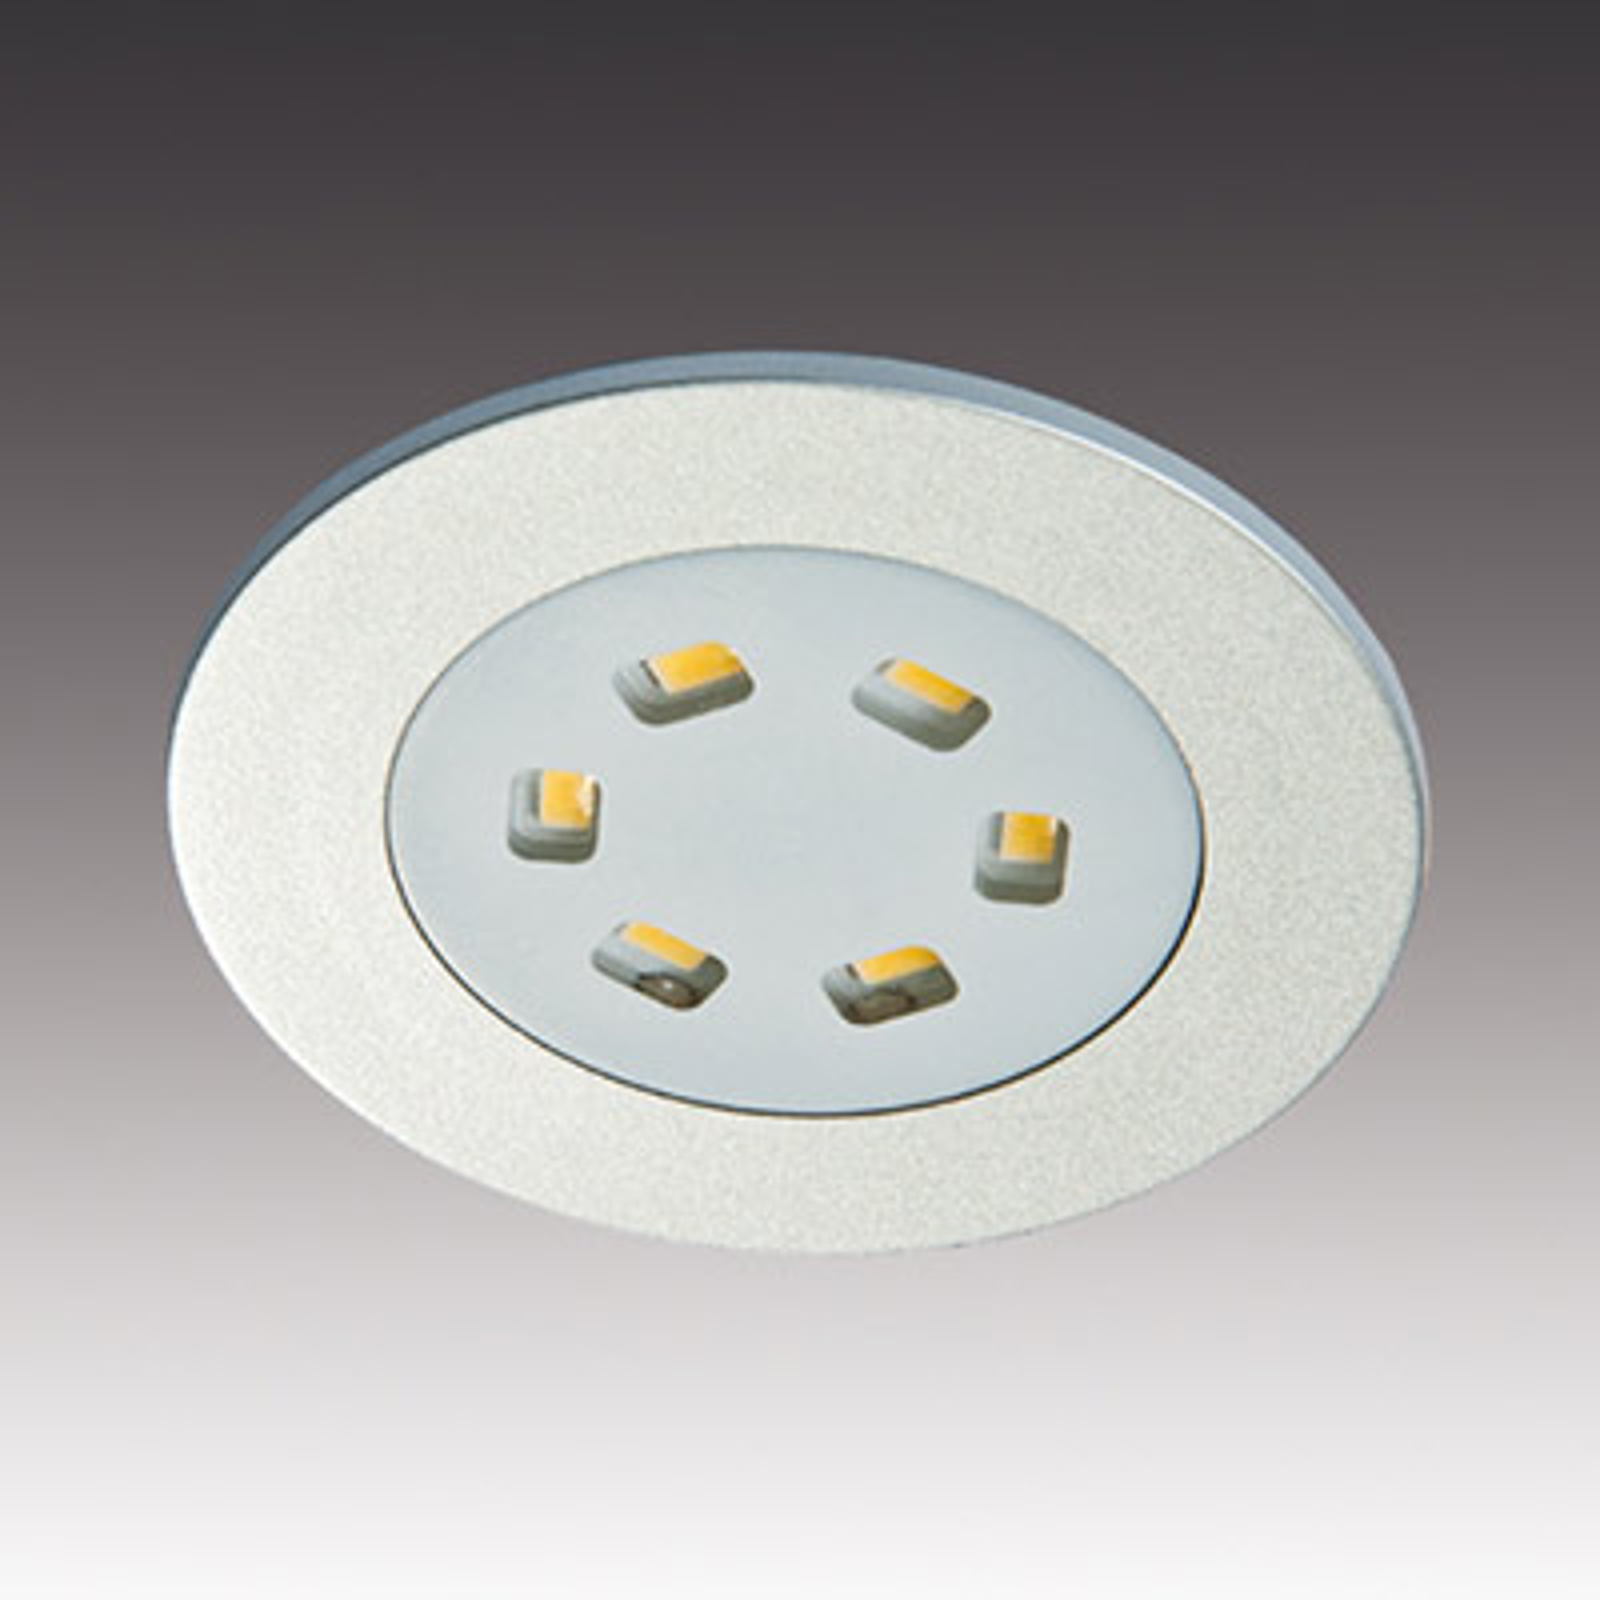 Spot LED piatto da incasso R 55